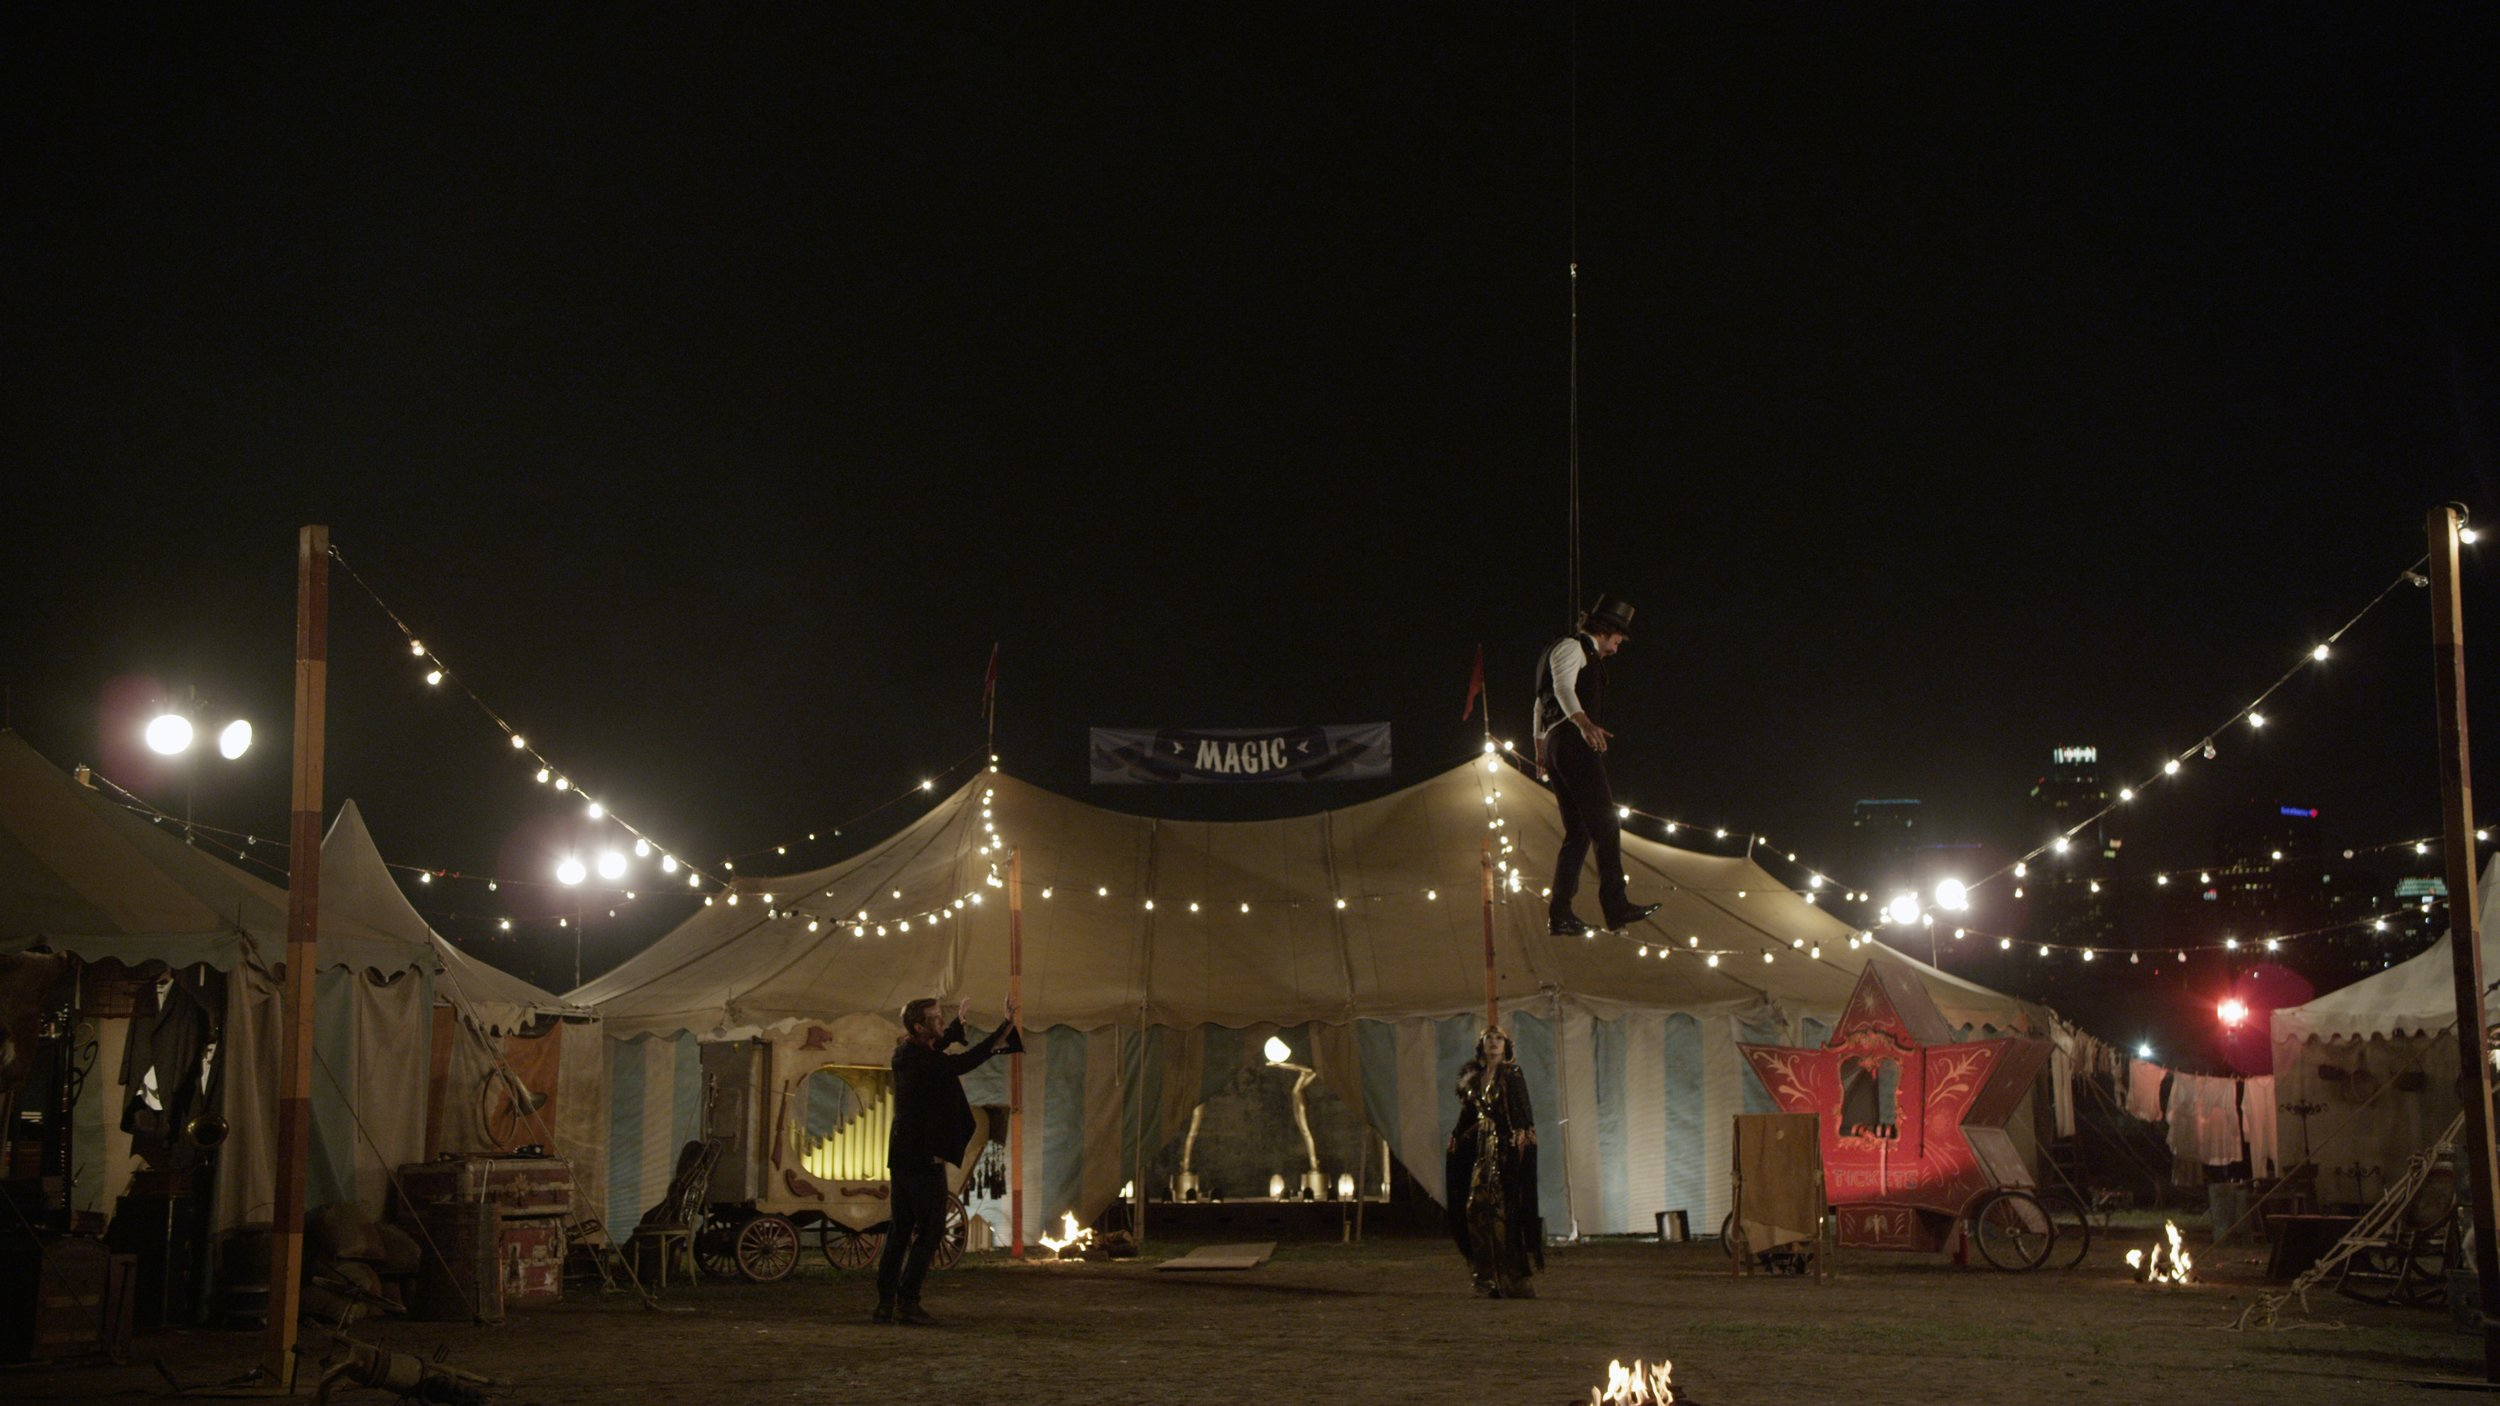 Coldplay's Chris Martin went to our director Jonas Åkerlund to direct the music video for their song Magic. Jonas sent me some reference and the band's song as a springboard to start feeling out where we would take the visuals for the film.